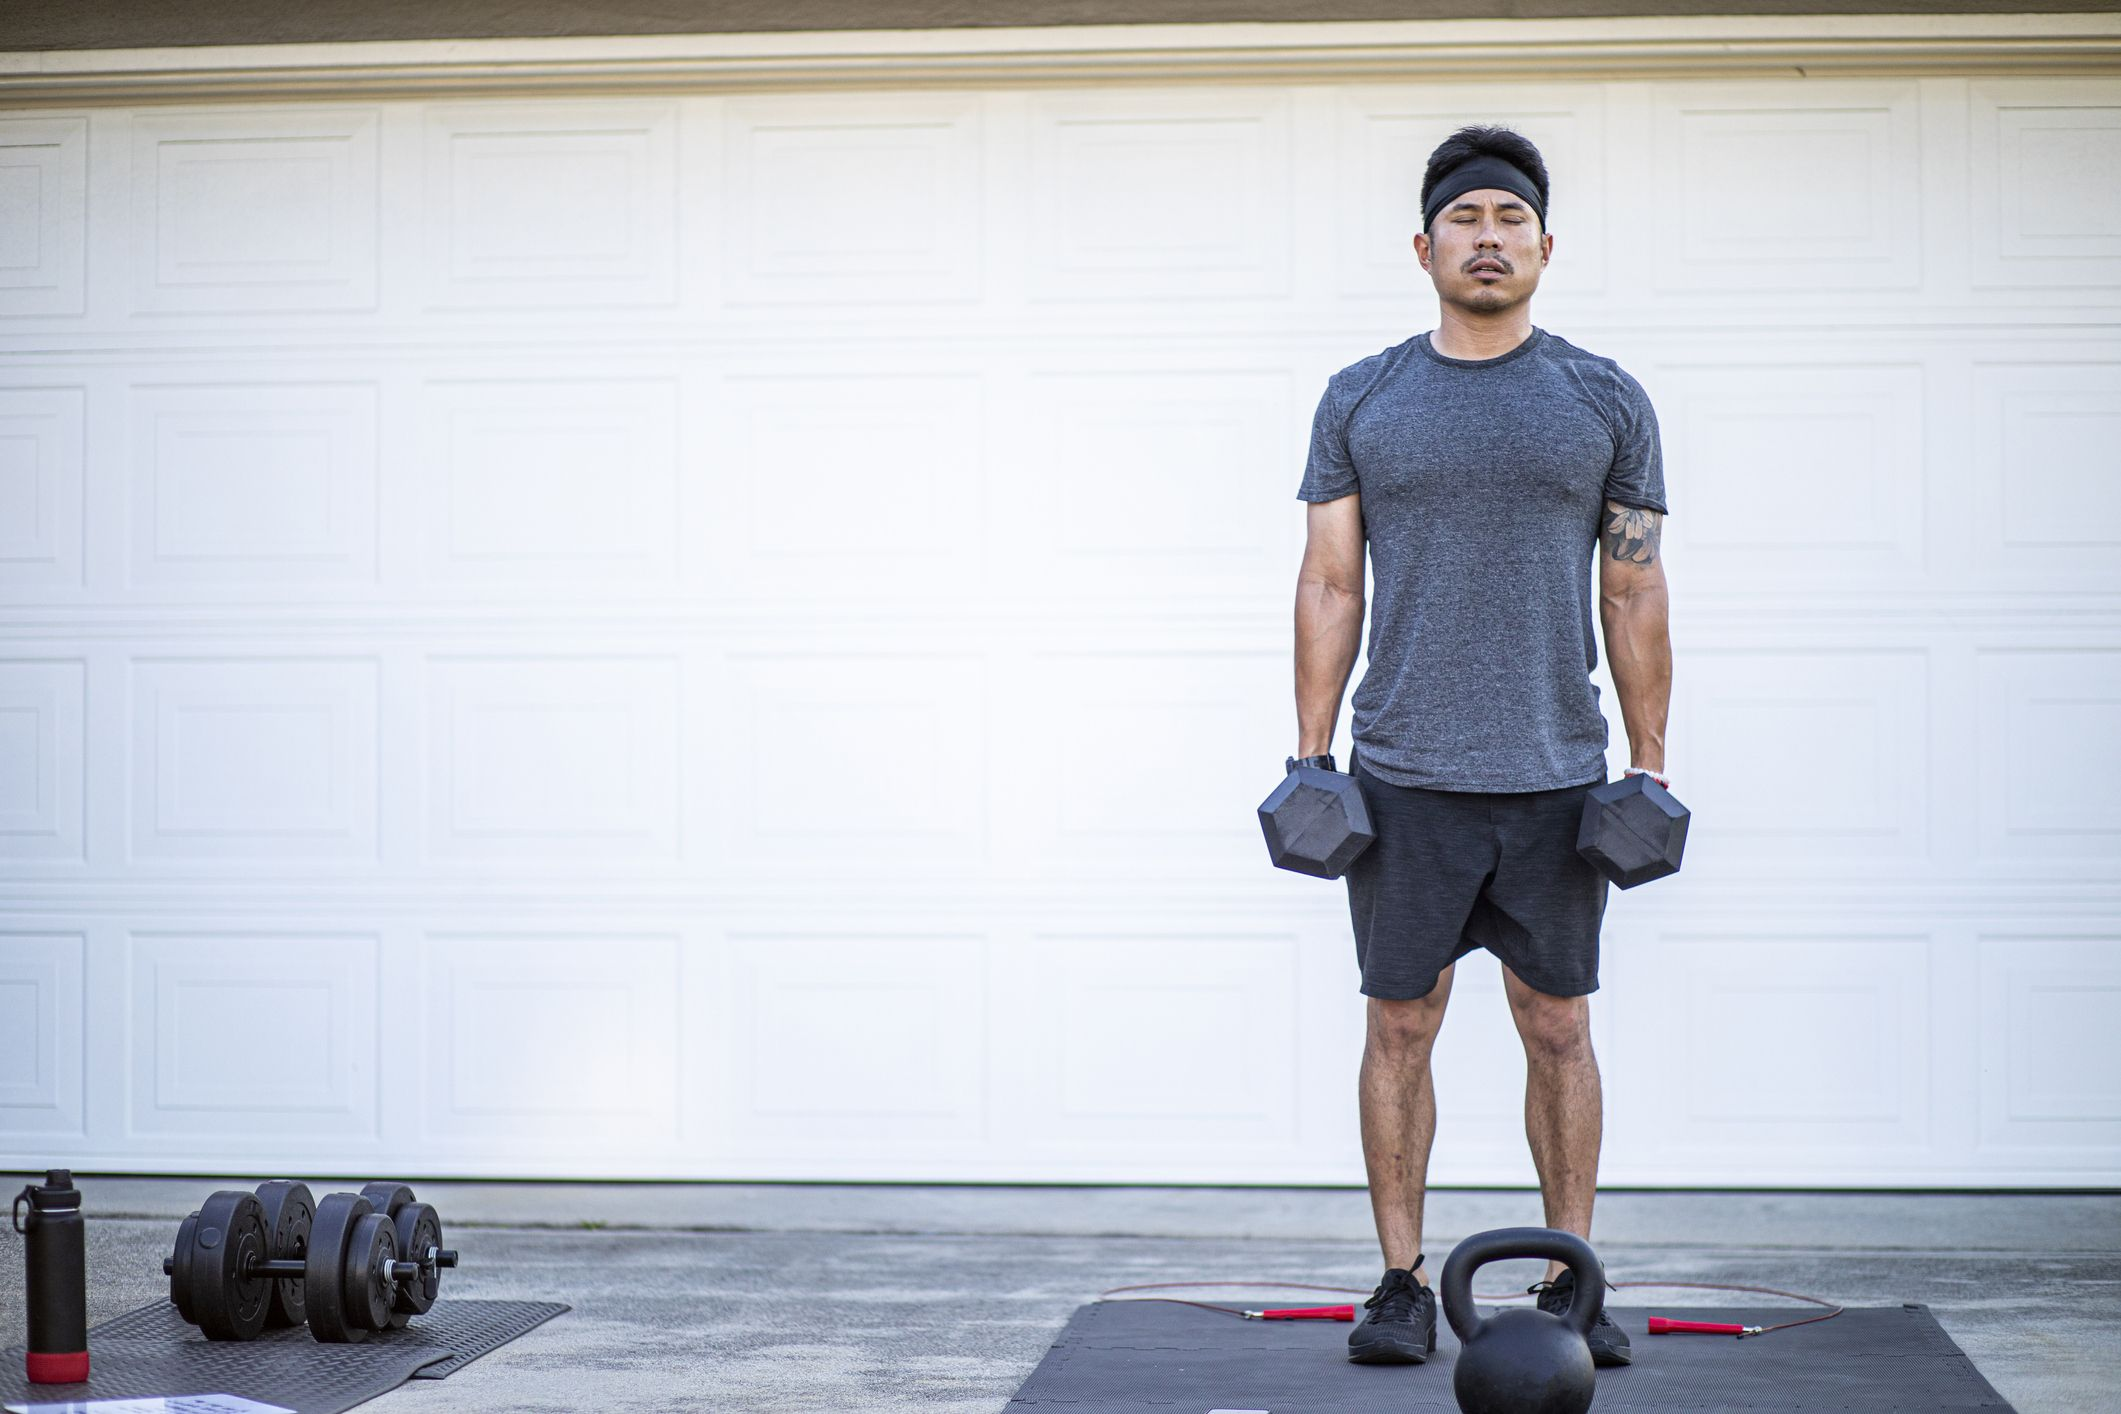 15 Crossfit Workouts You Can Do At Home